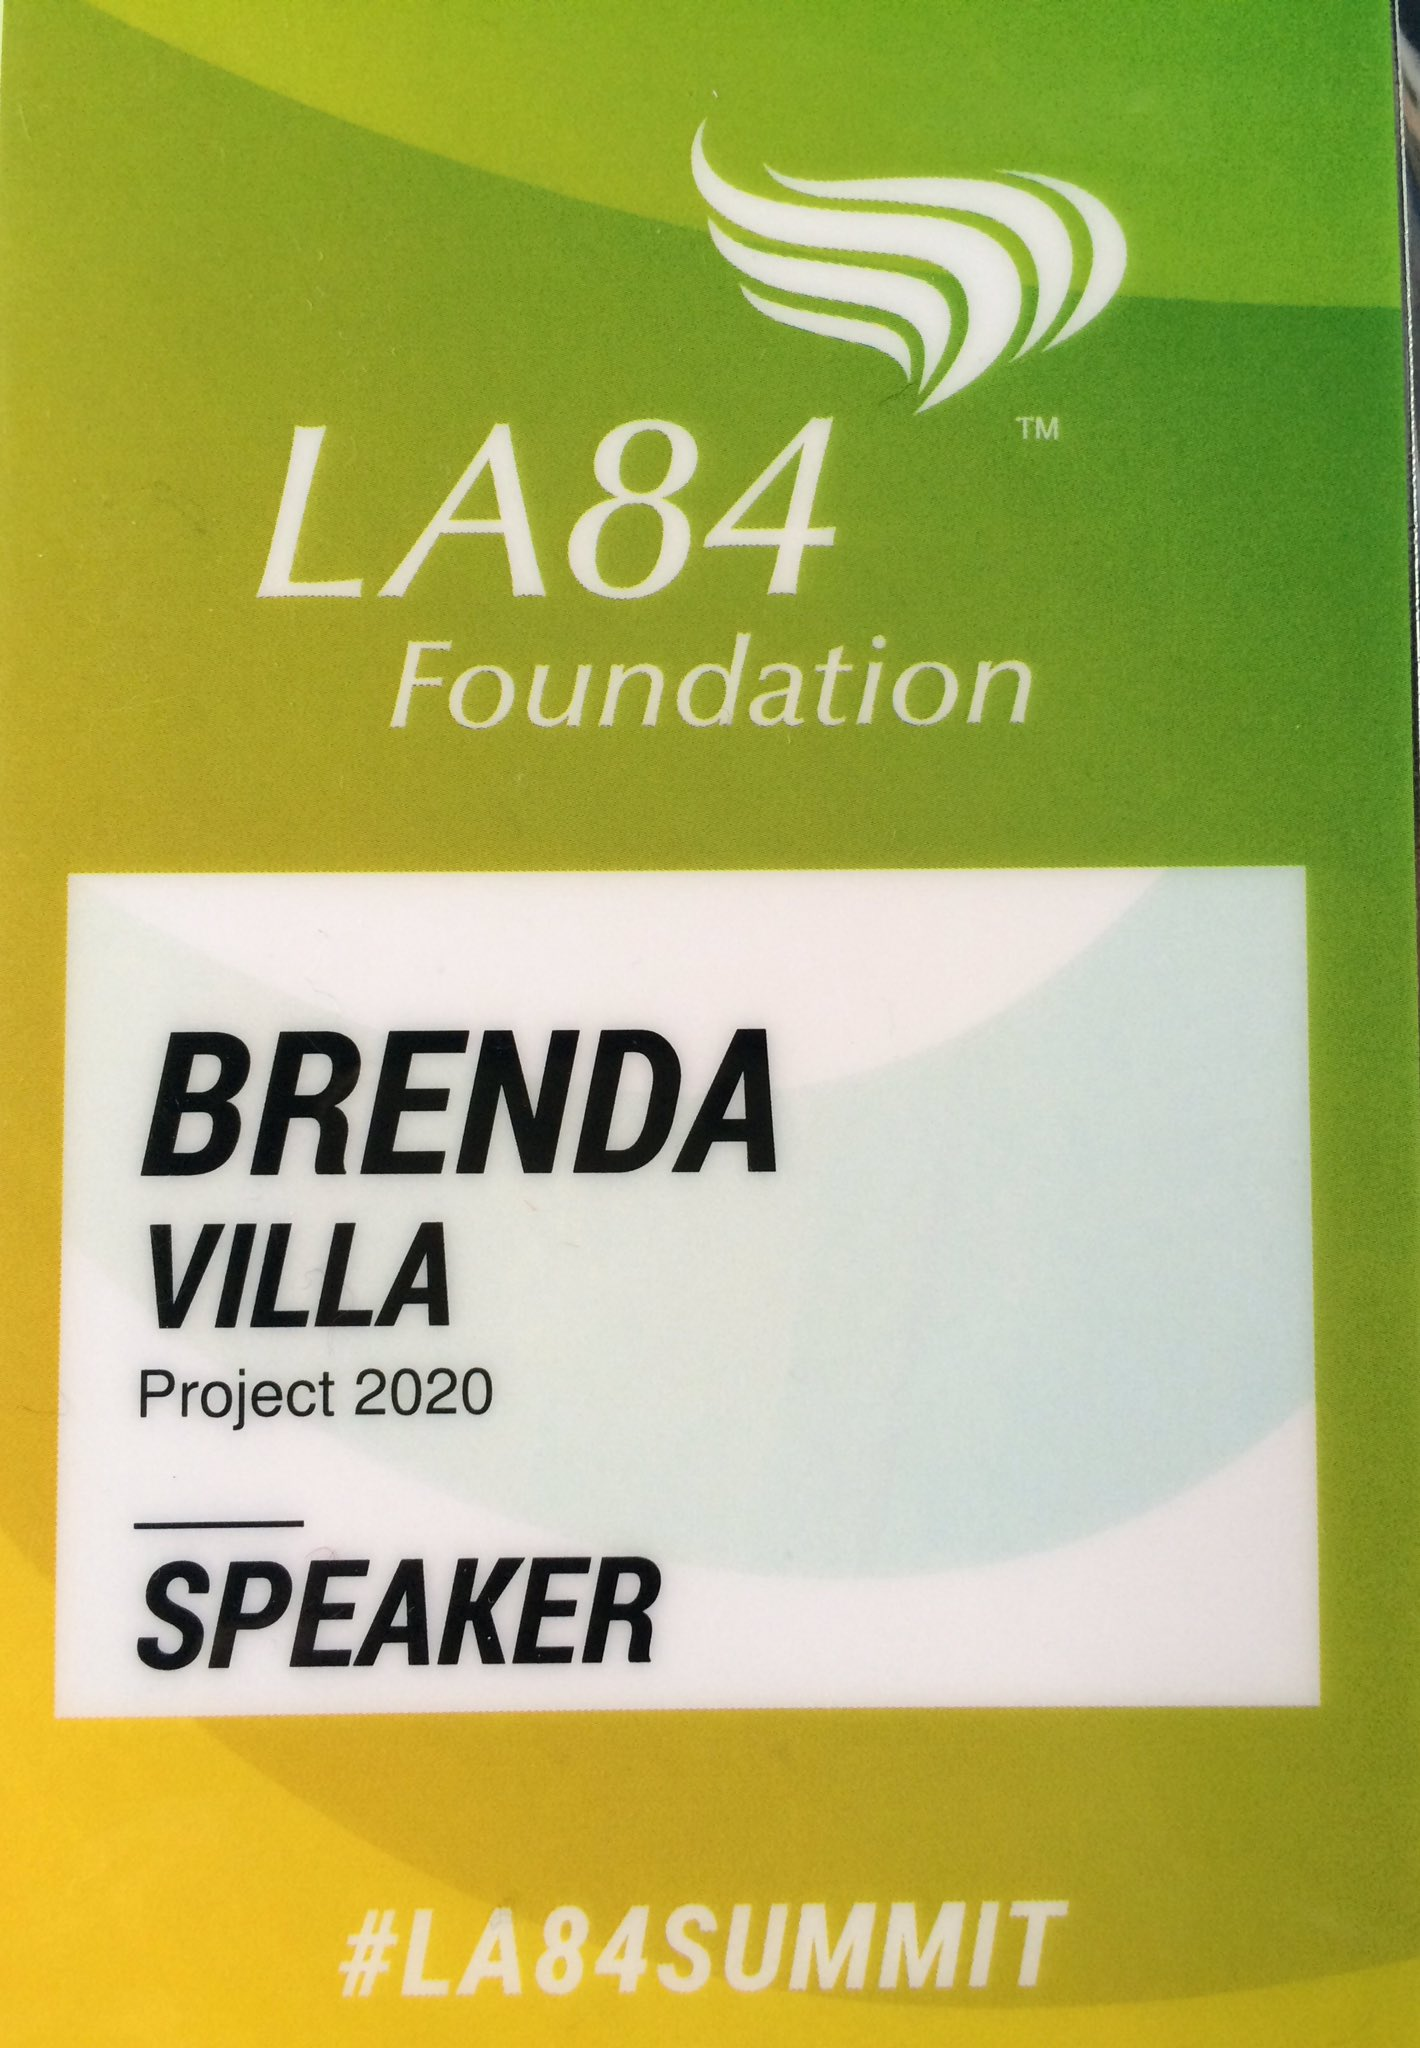 It's a privilege & duty 2 give back #playingforward 💛 LA is in my heart always love helping out @LA84Foundation & @LA2024  #LA84summit https://t.co/ESCzgkzUt7